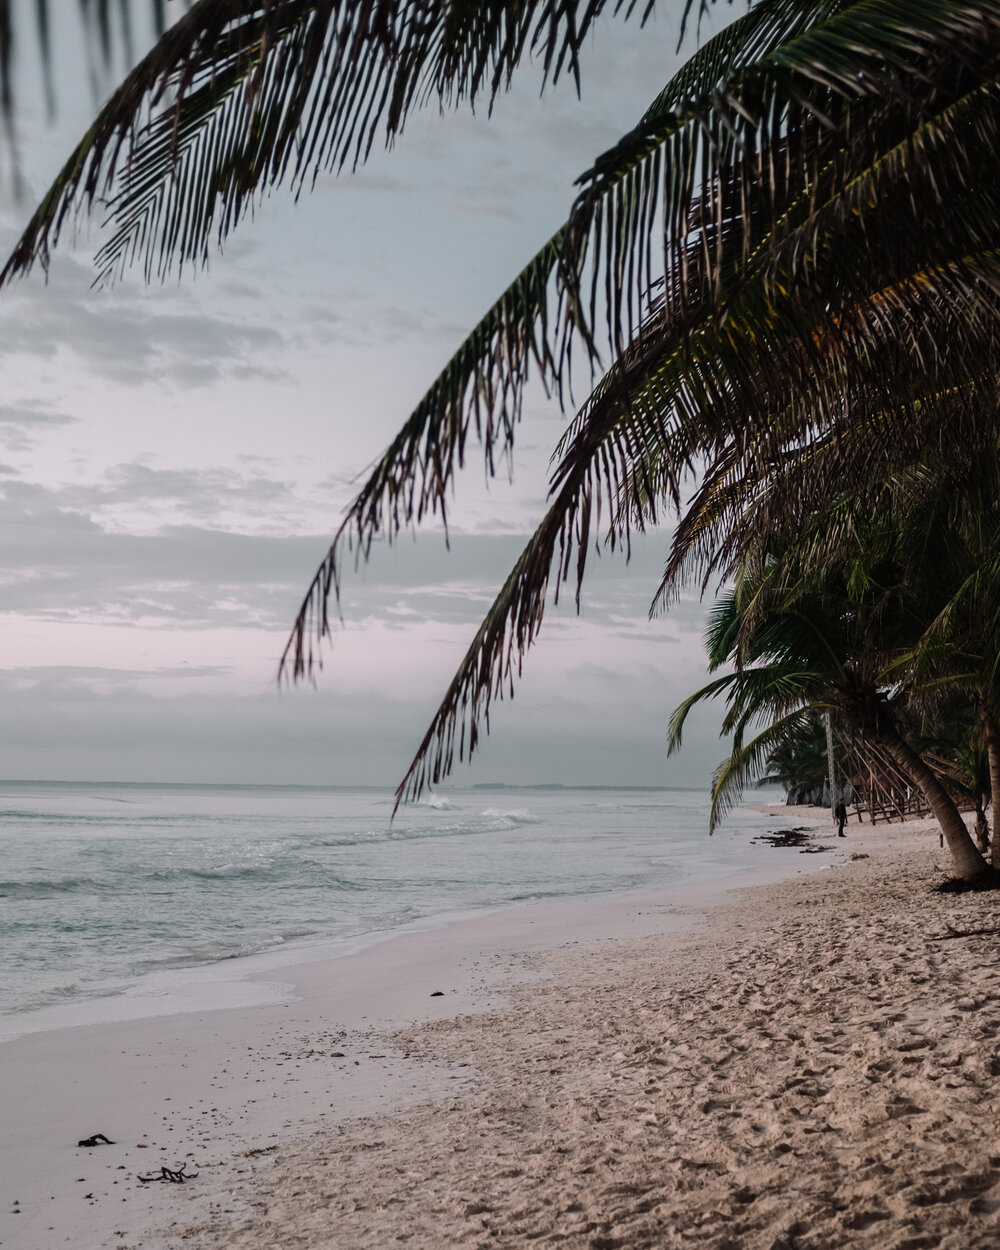 Rachel Off Duty: Palm Trees and an Empty Beach in Tulum, Mexico